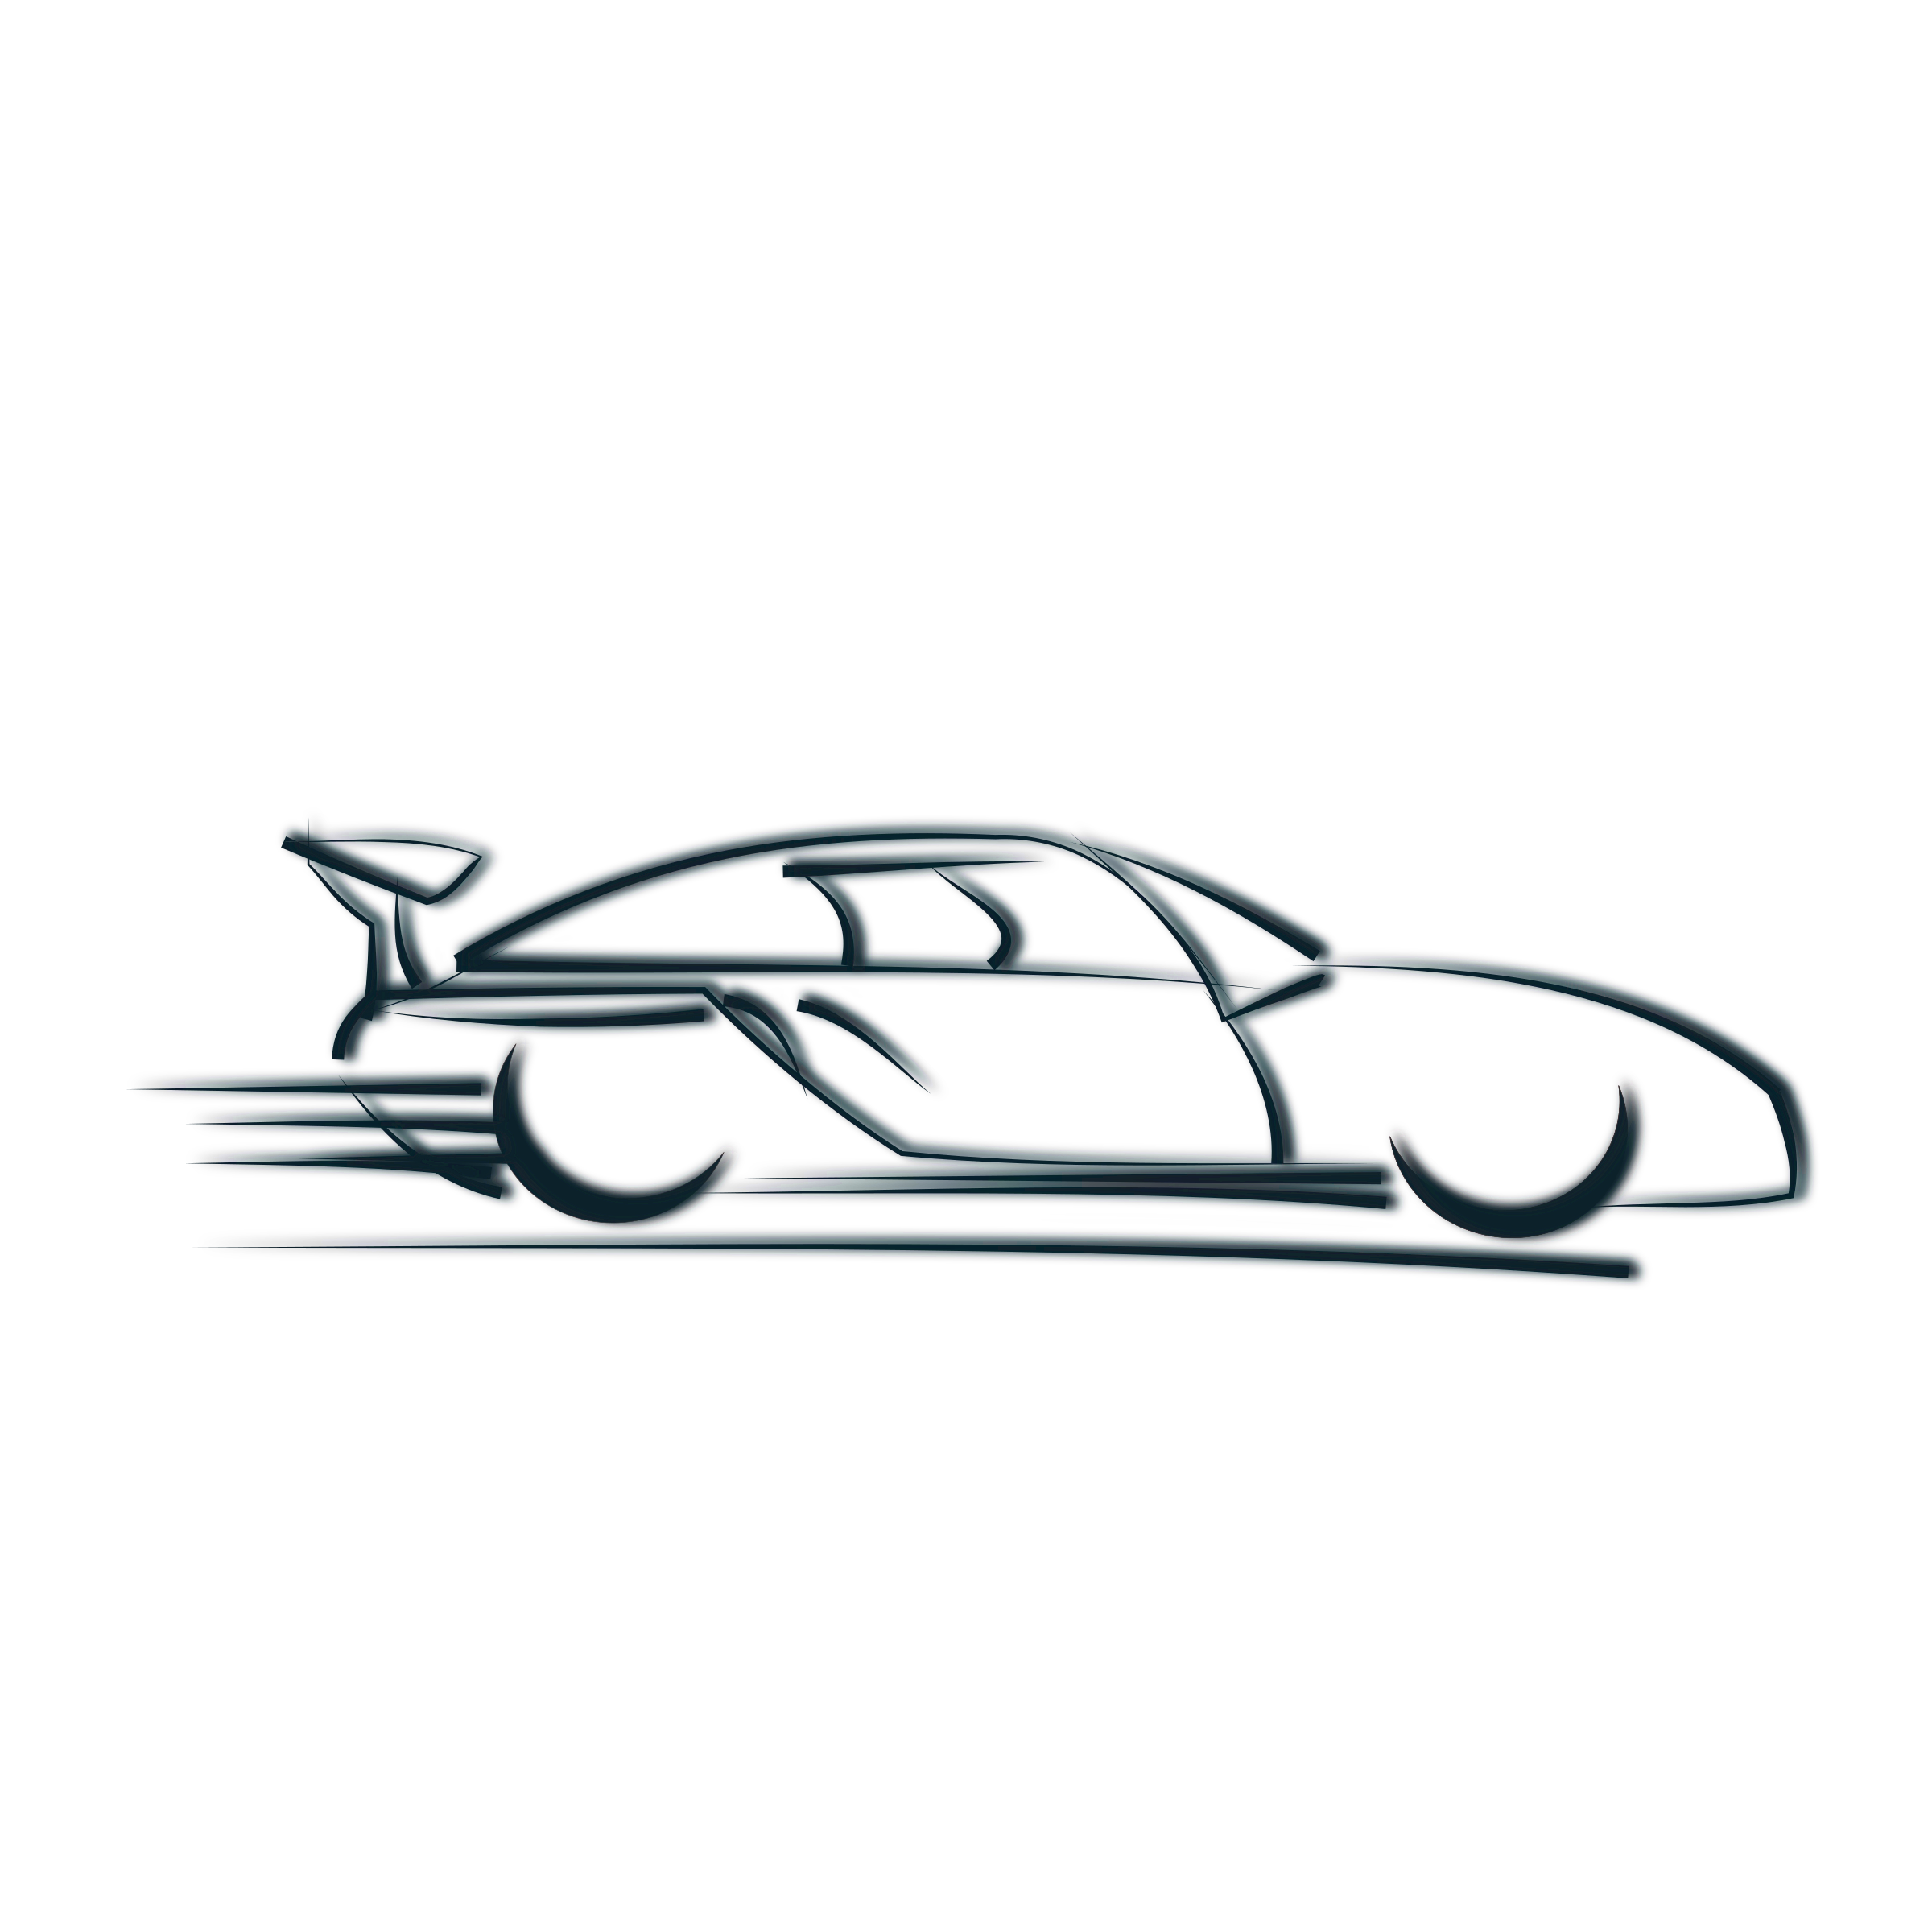 Moving car clipart jpg royalty free Clipart - car icon jpg royalty free